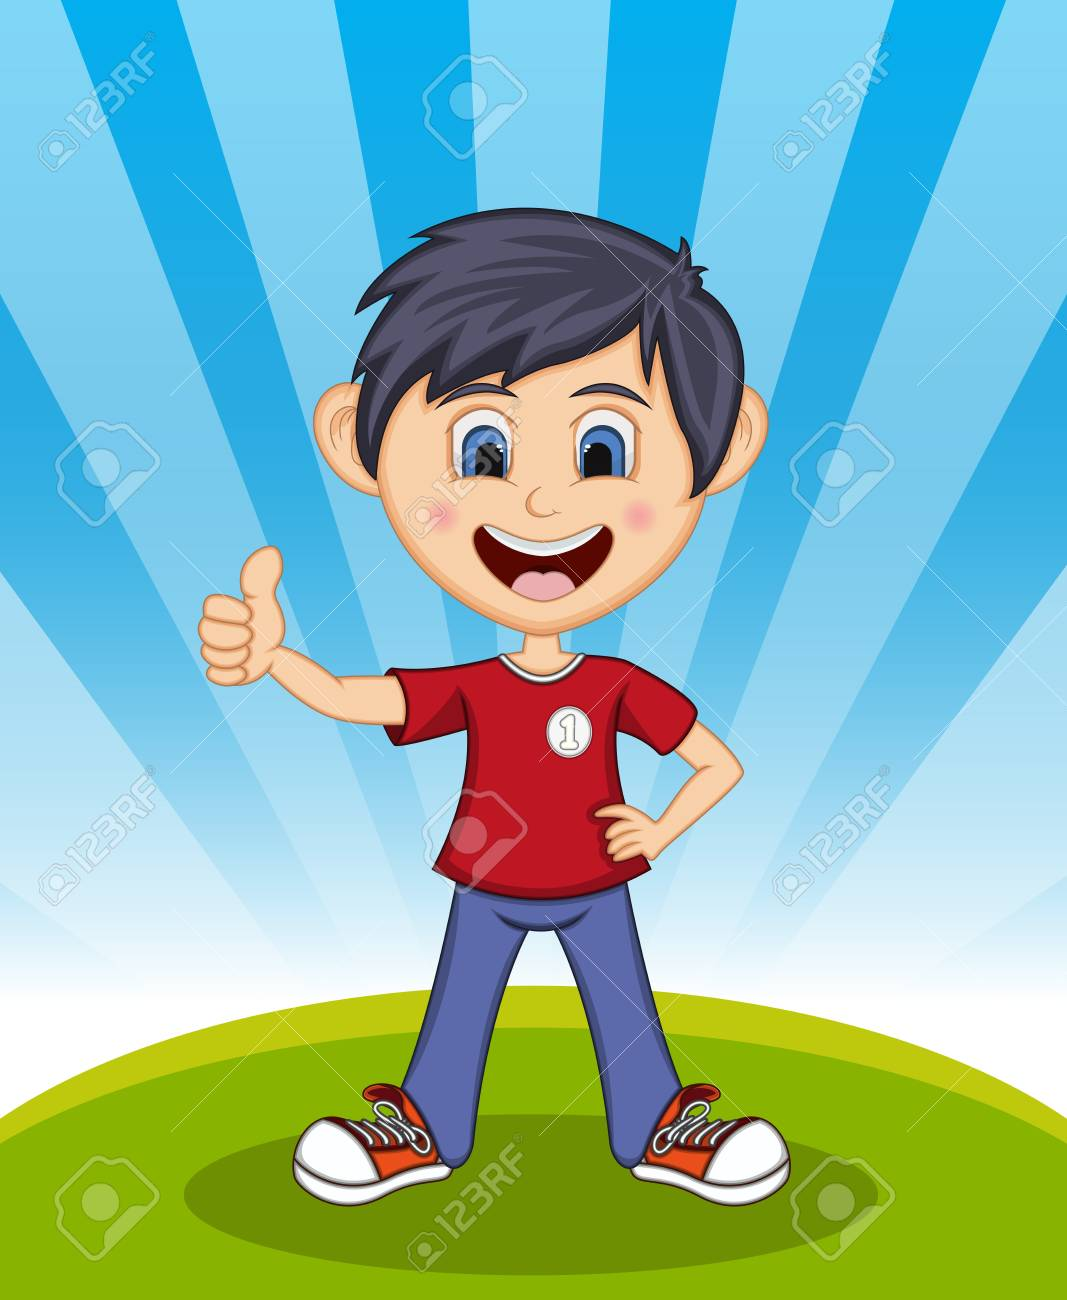 handsome little boy tumbs up with background cartoon royalty free